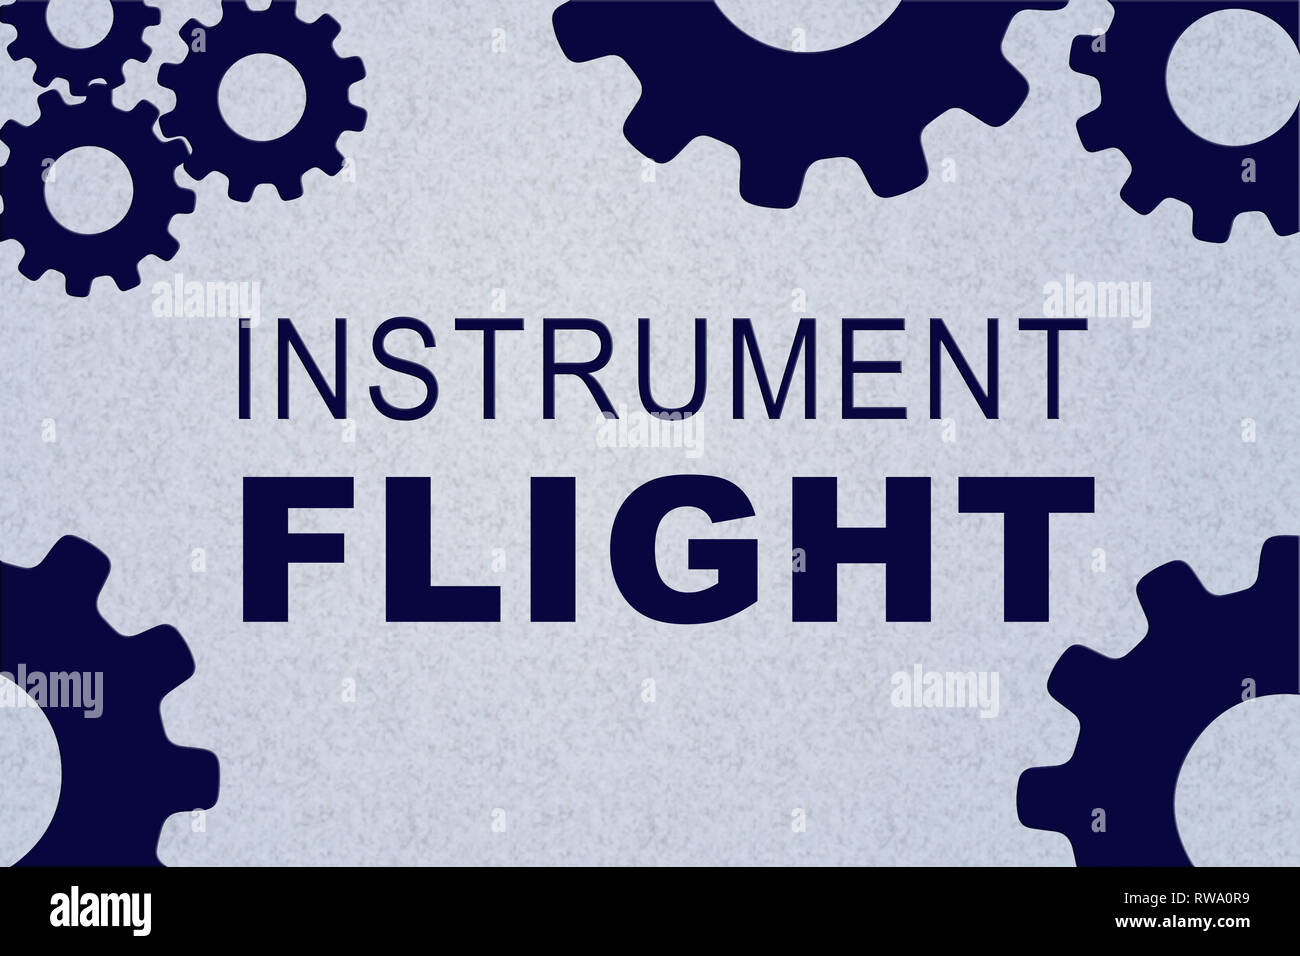 INSTRUMENT FLIGHT sign concept illustration with blue gear wheel figures on pale blue background - Stock Image